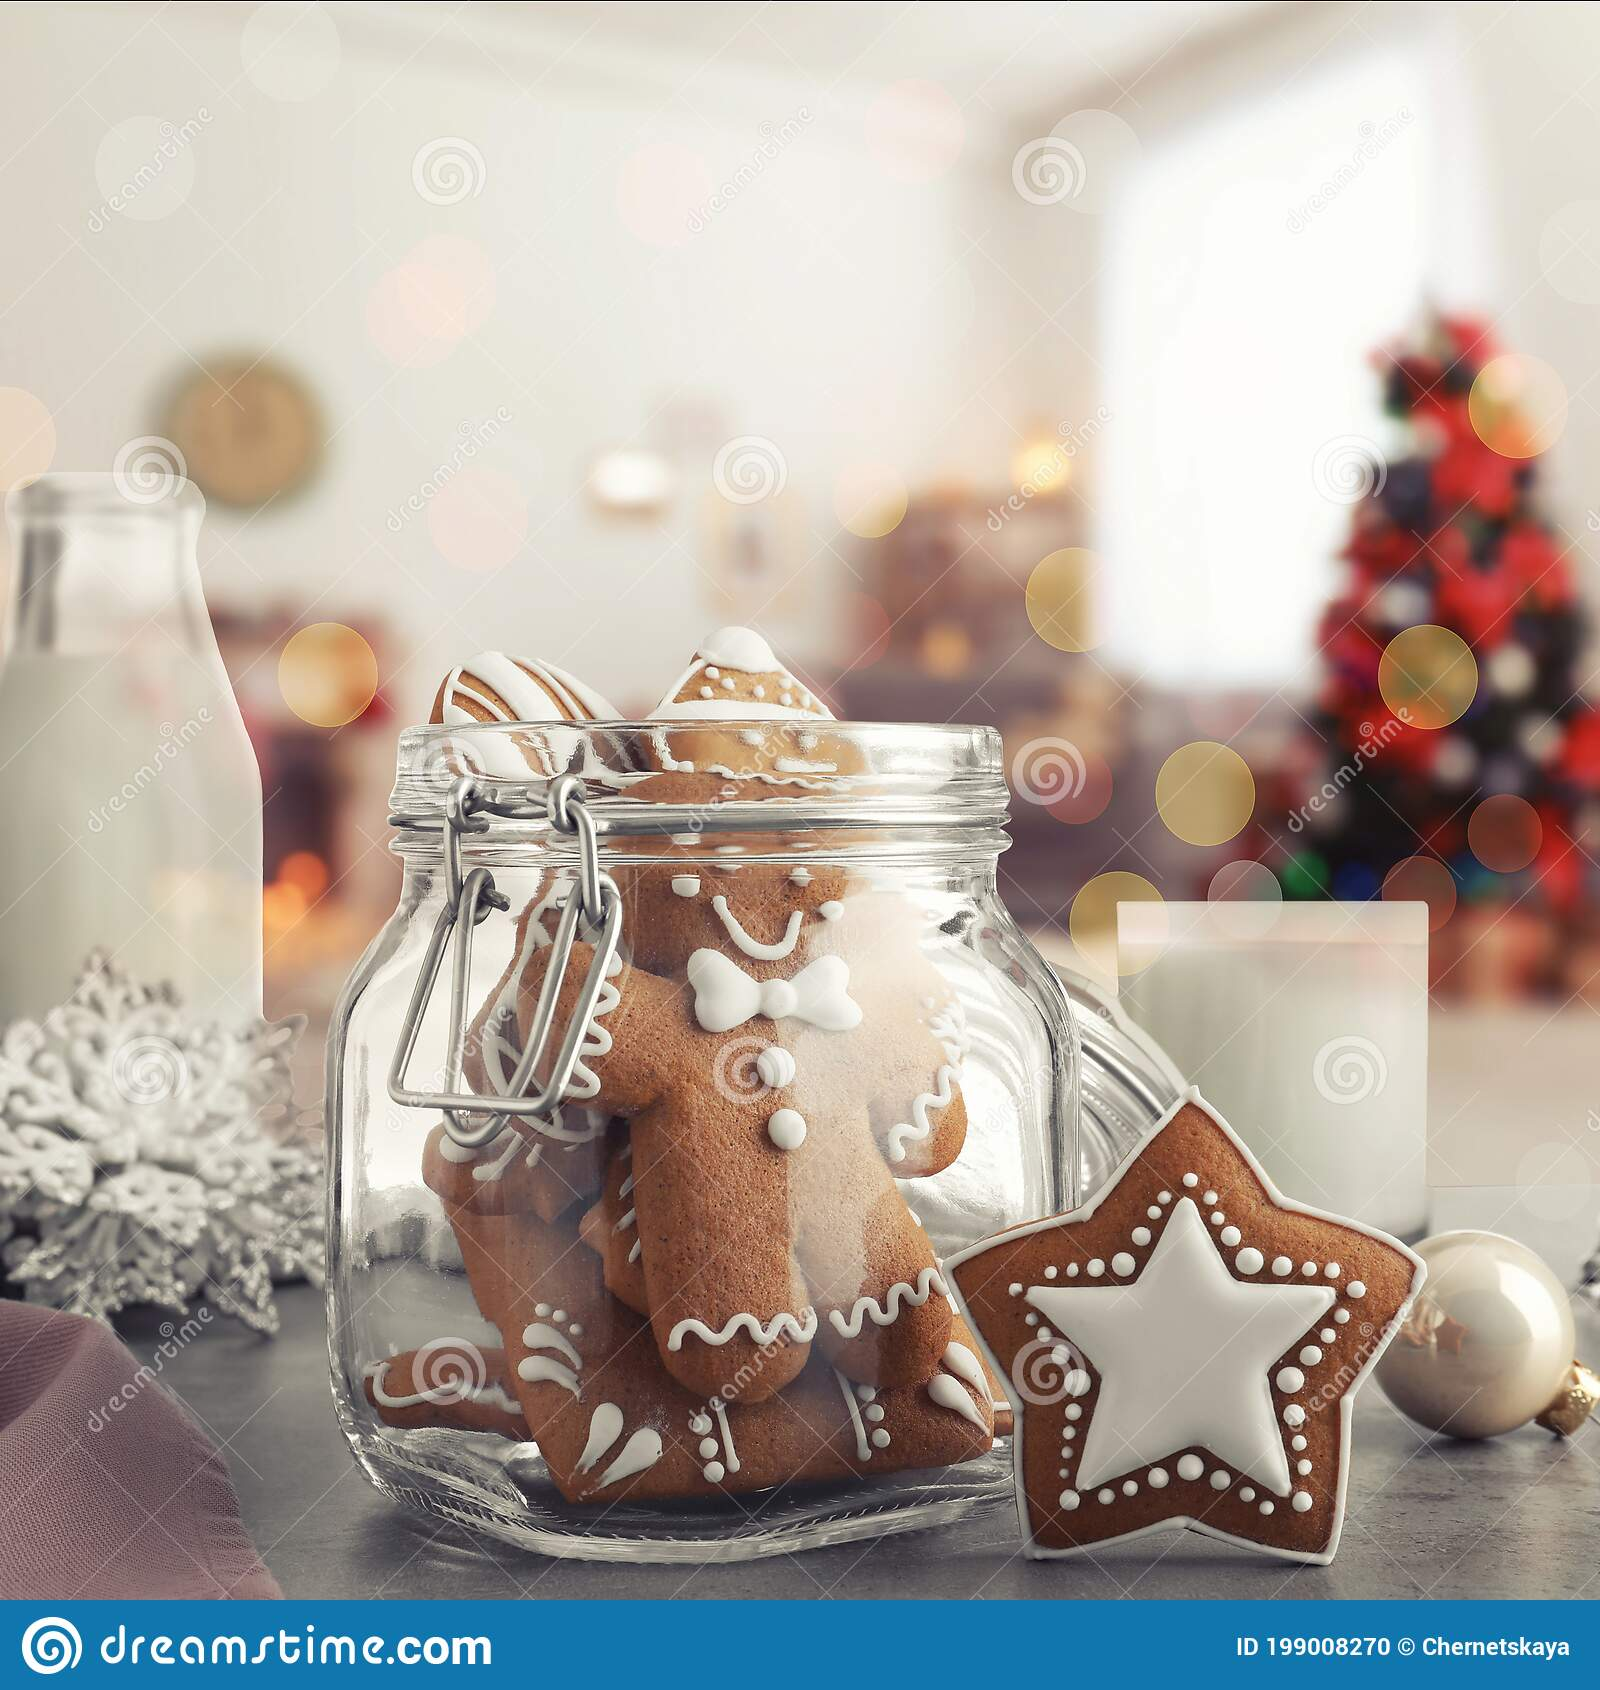 glass jar with christmas cookies milk and ornaments on table in room stock photo image of merry lights 199008270